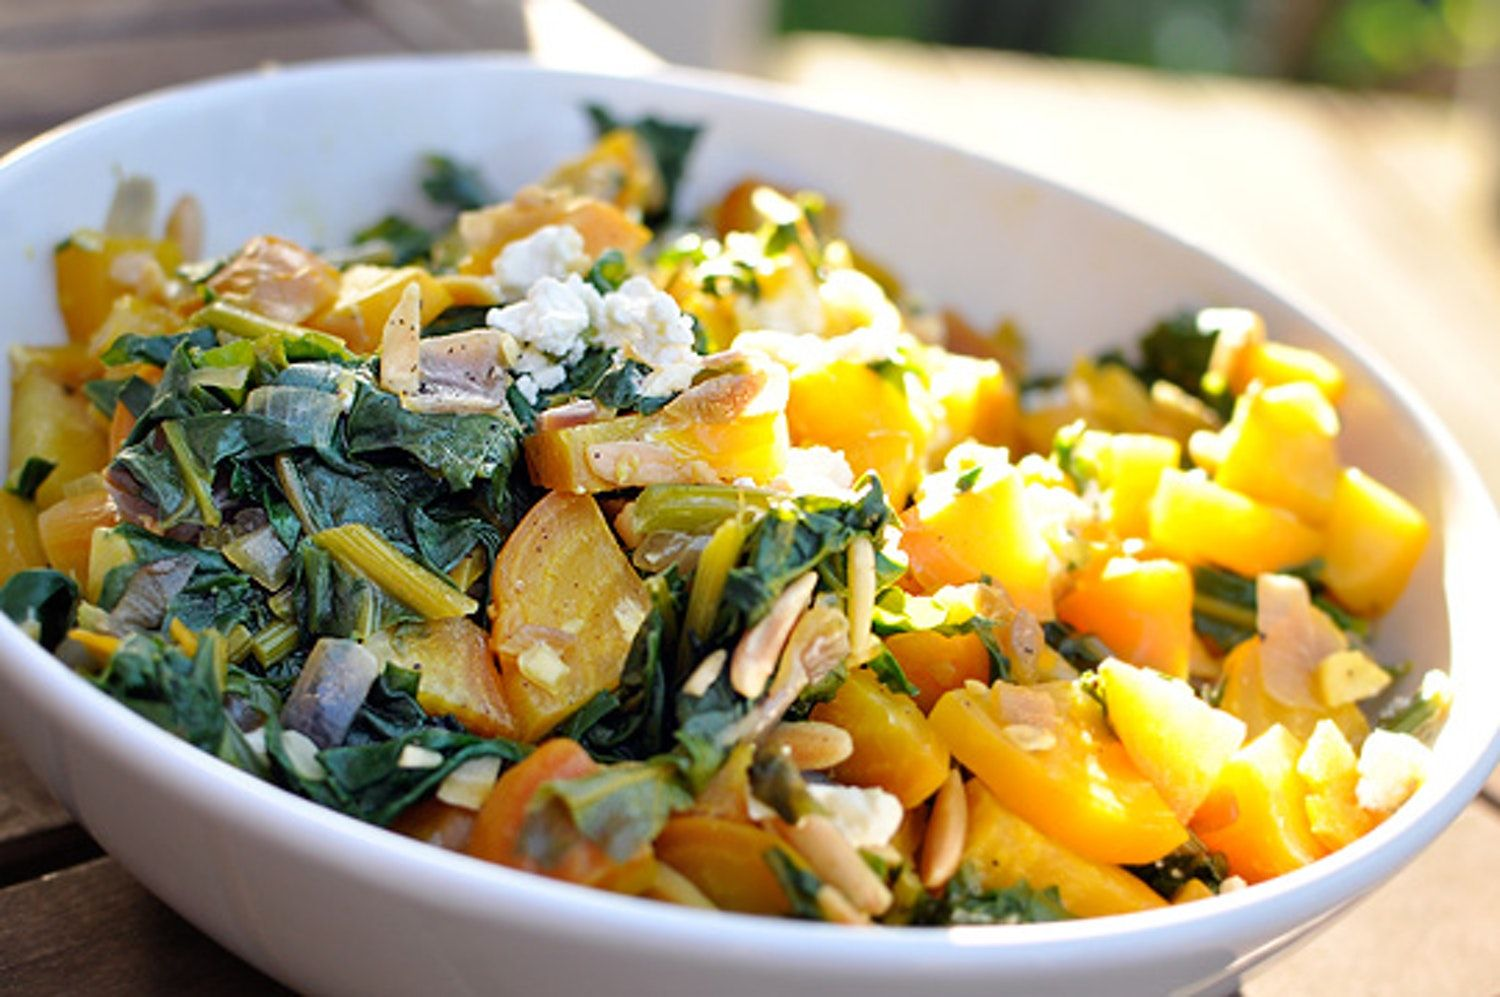 Recipe Warm Golden Beet Salad With Greens And Almonds Recipe Beet Salad Golden Beets Salad Recipes